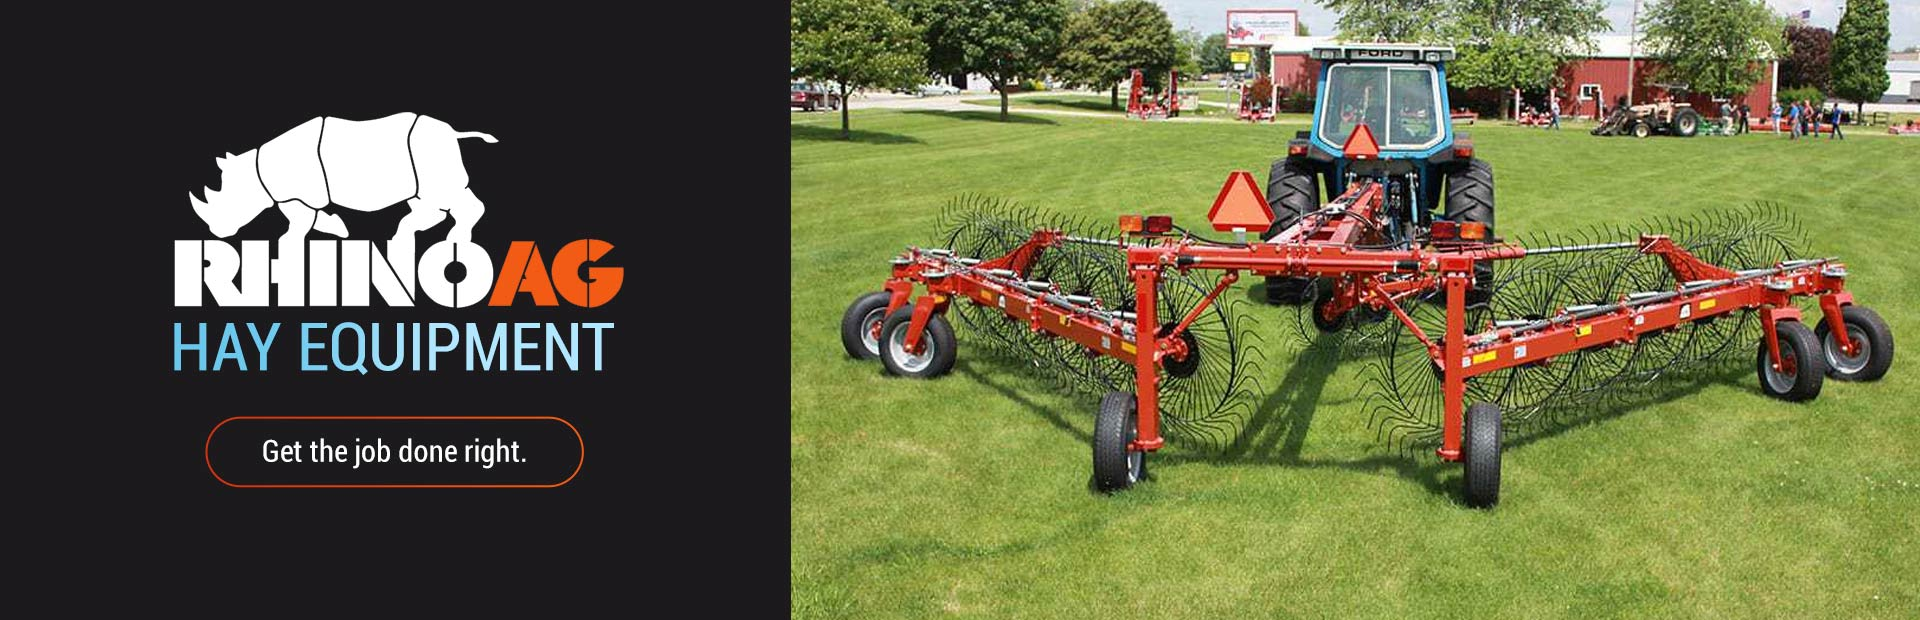 RhinoAg Hay Equipment: Click here to view the models.